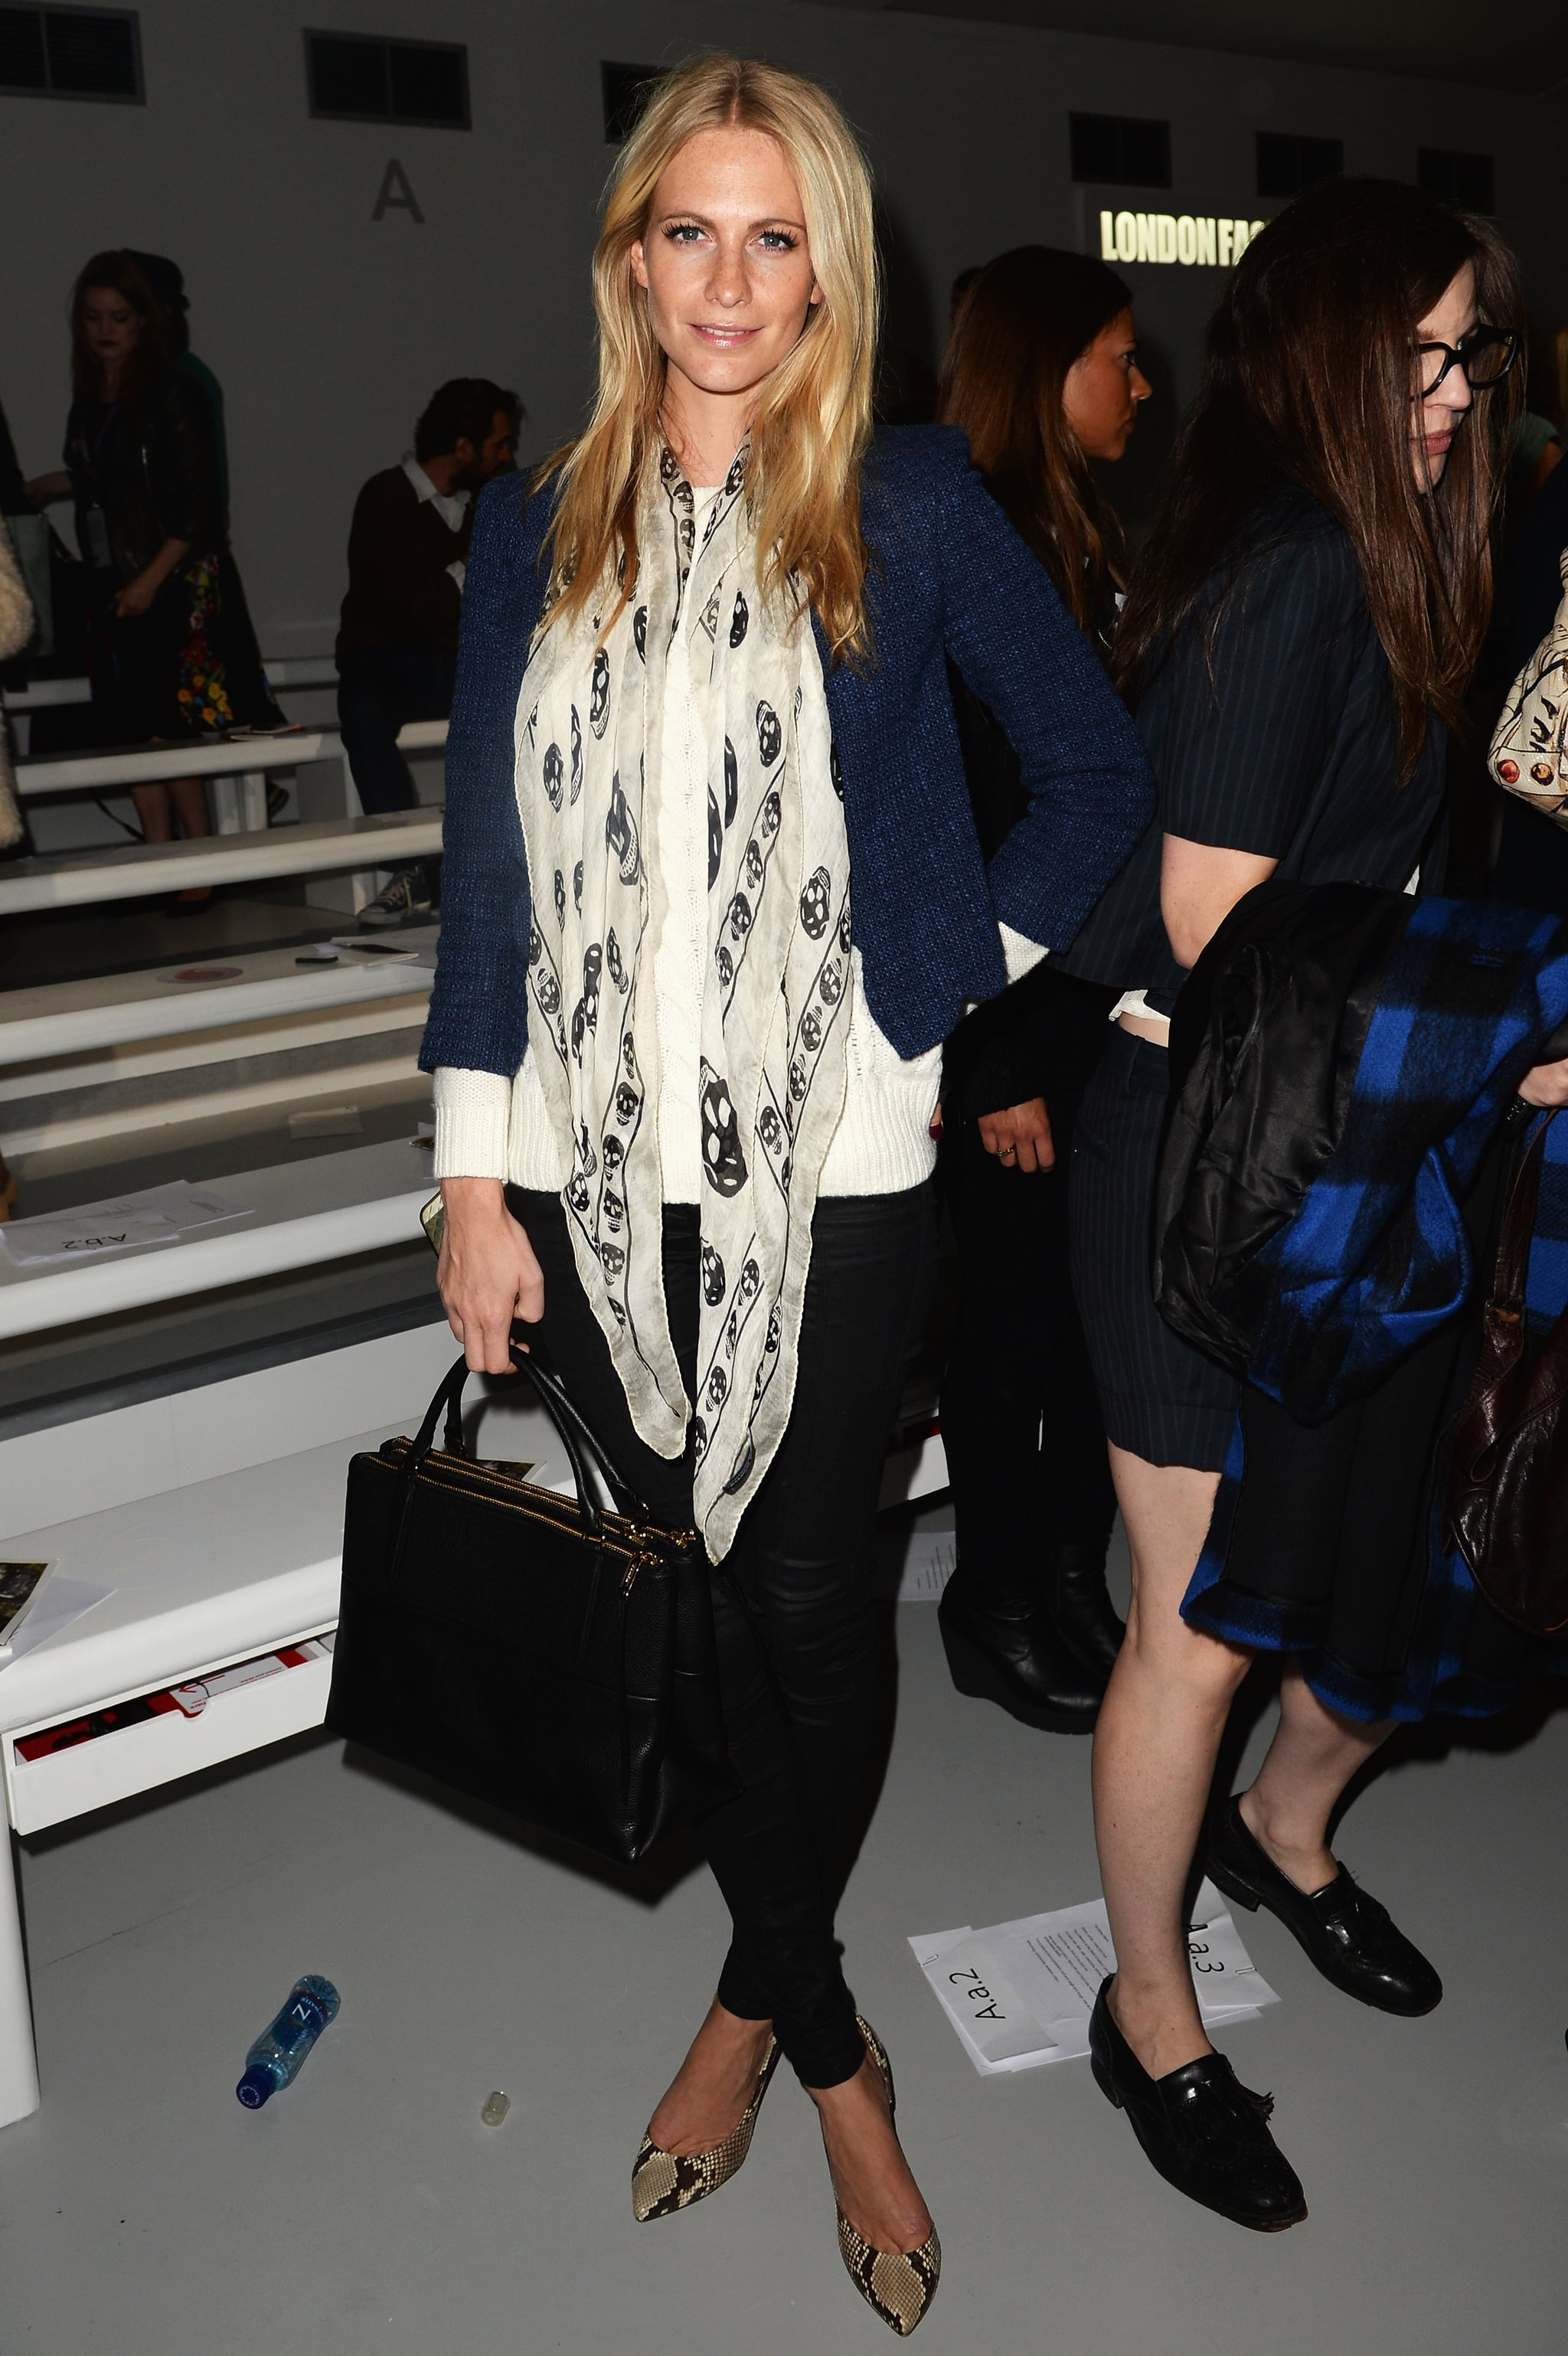 Poppy Delevingne accessorized with an outfit-making scarf while at Simone Rocha's runway show.